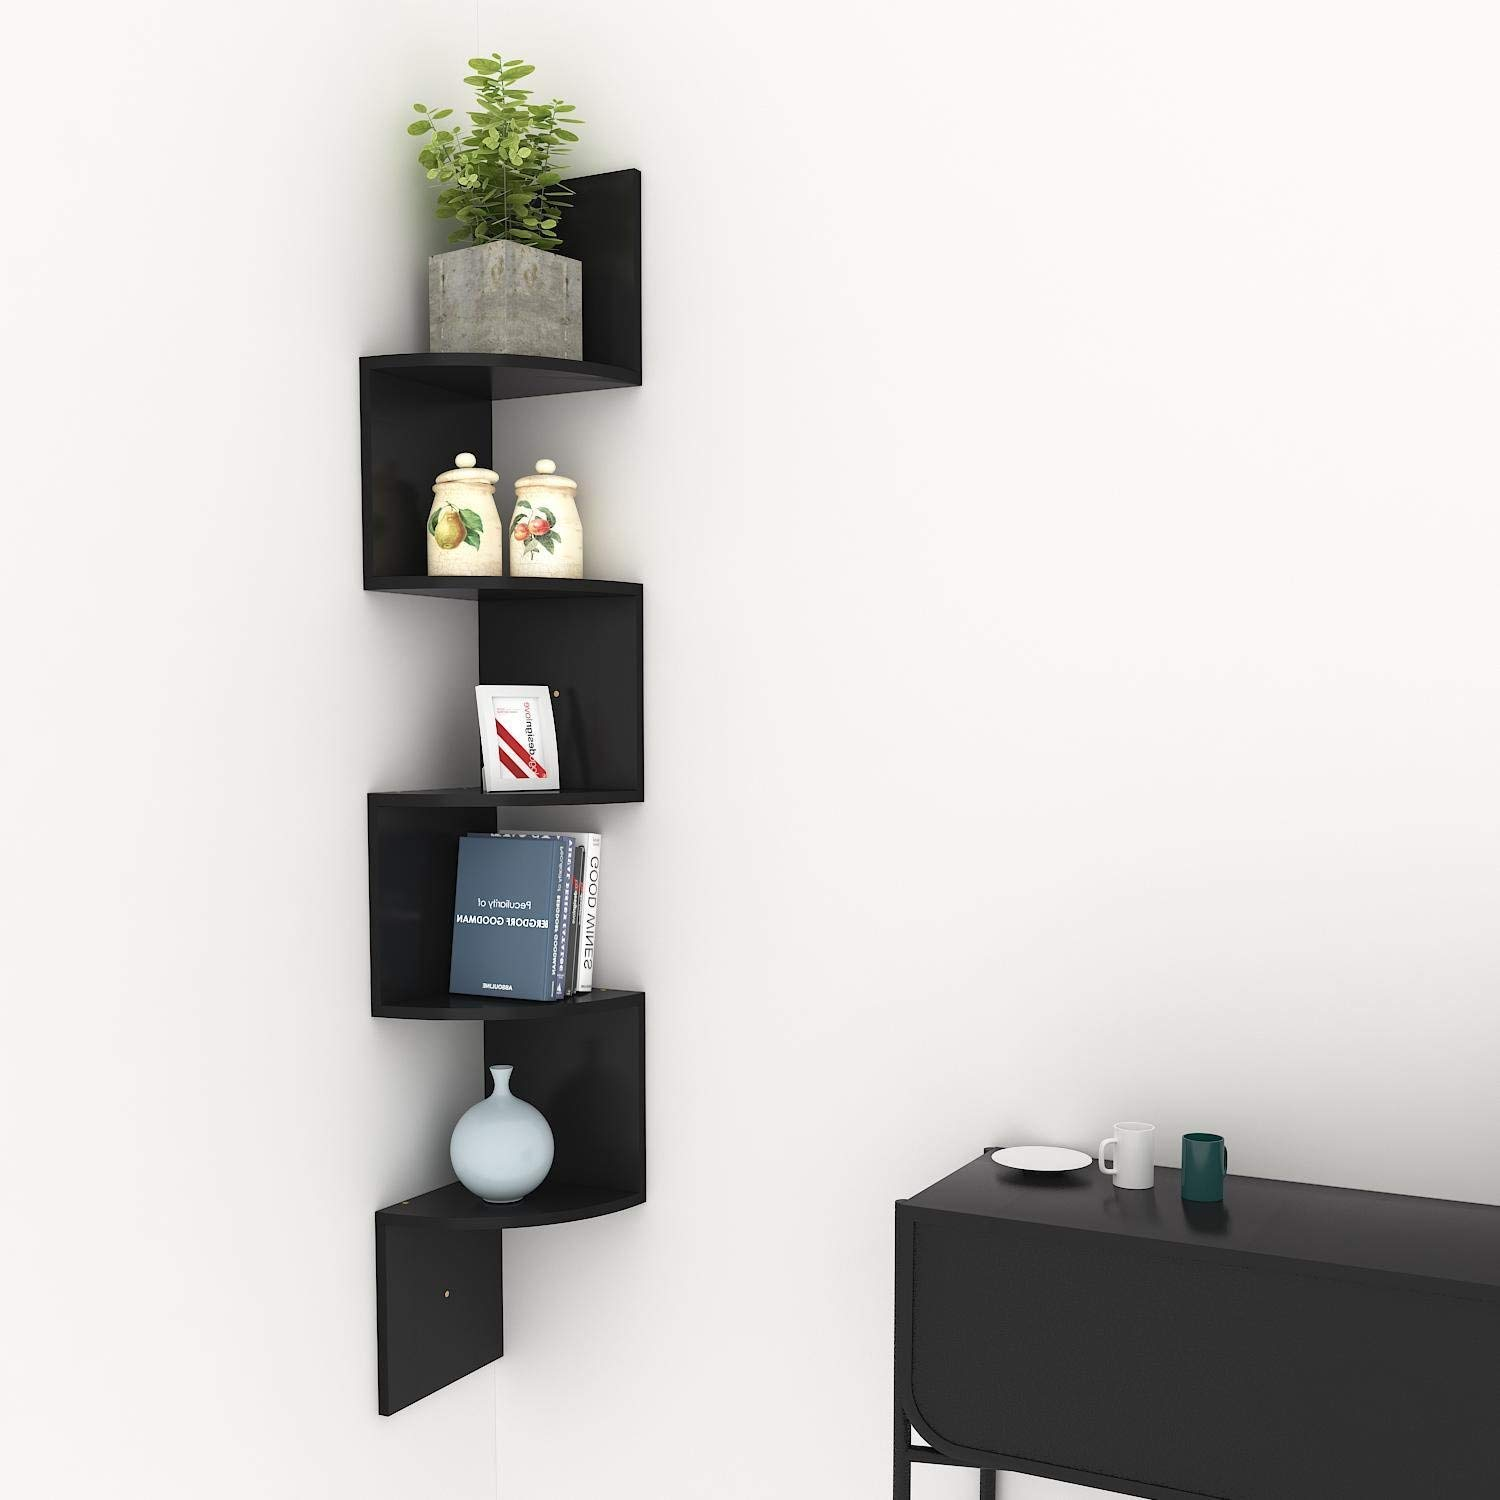 floating corner shelves black find shelf get quotations stock hindom home decor tier shape wall mount glass shower with rail kitchen organization containers building organizer